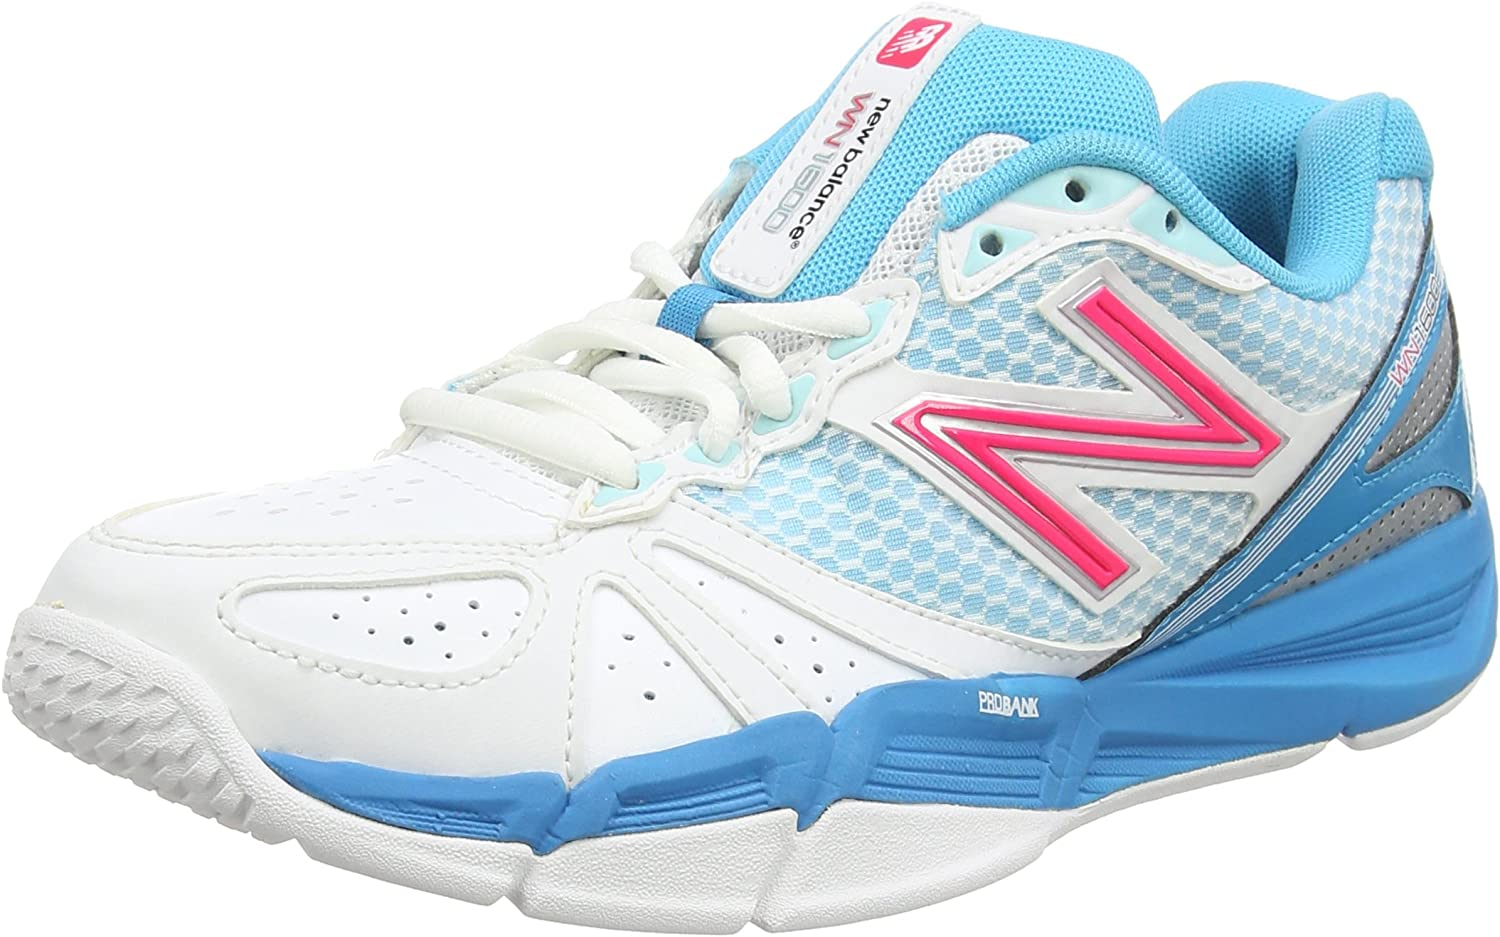 Wn1600b2 Netball Volleyball Shoes